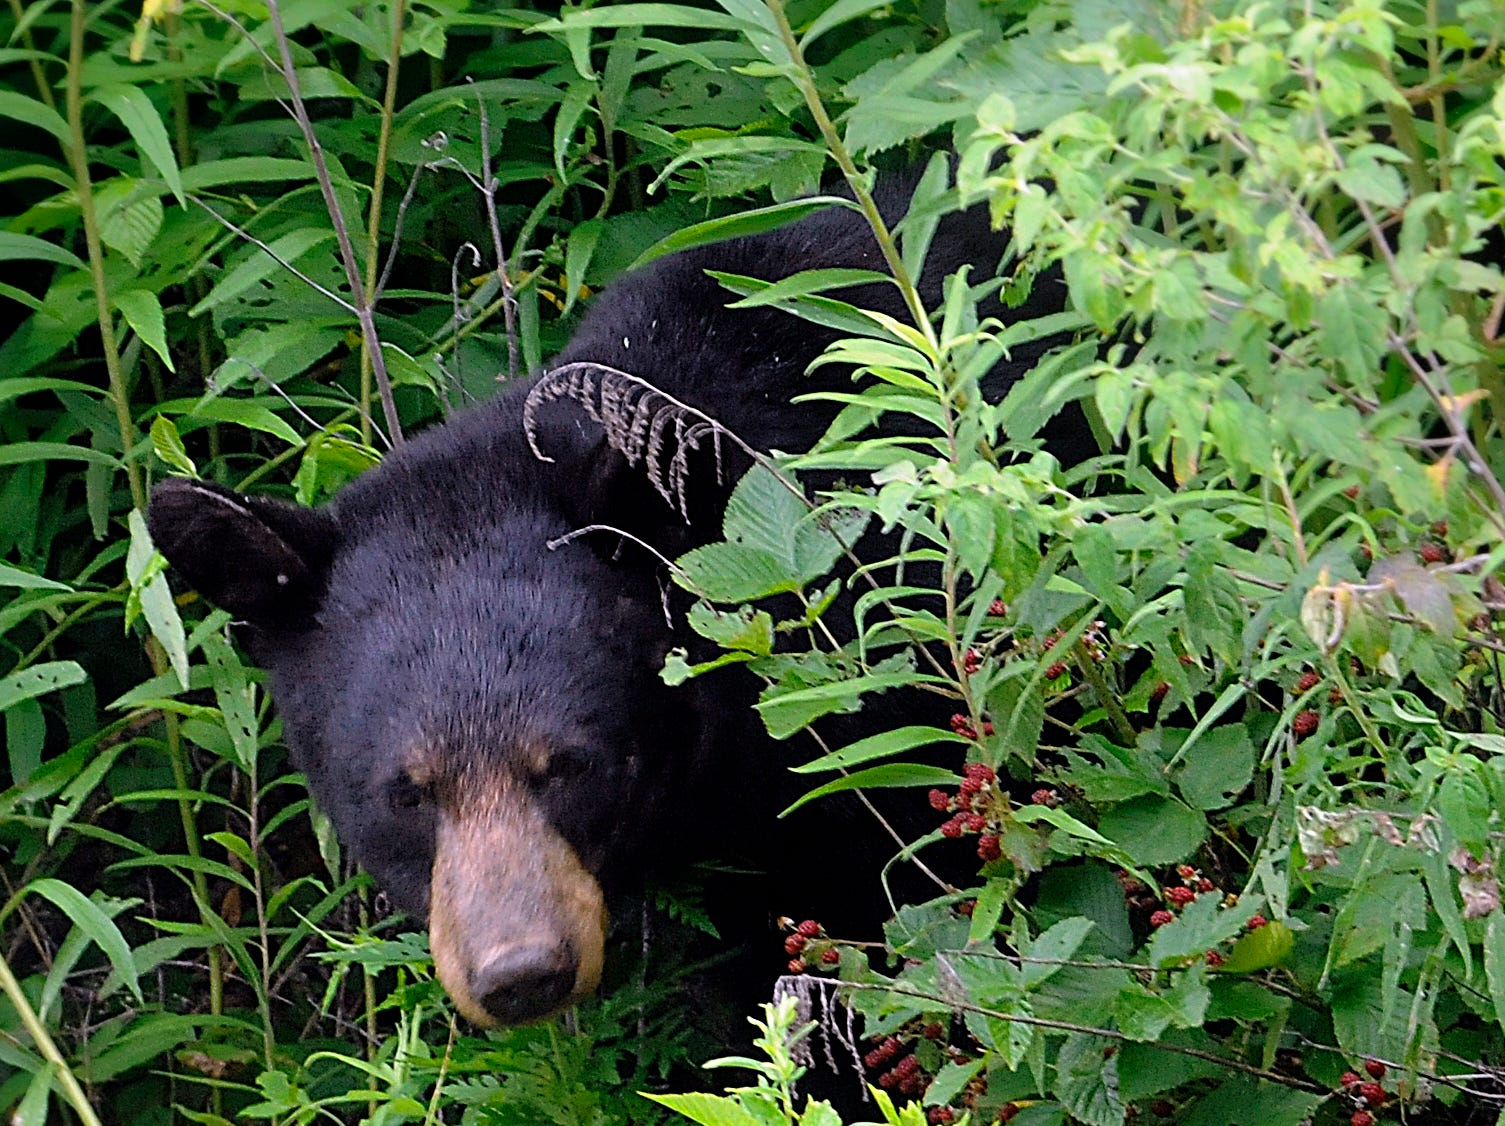 A black bear lunches on blackberries in Cades Cove July 10, 2009 in the Great Smoky Mountains National Park.